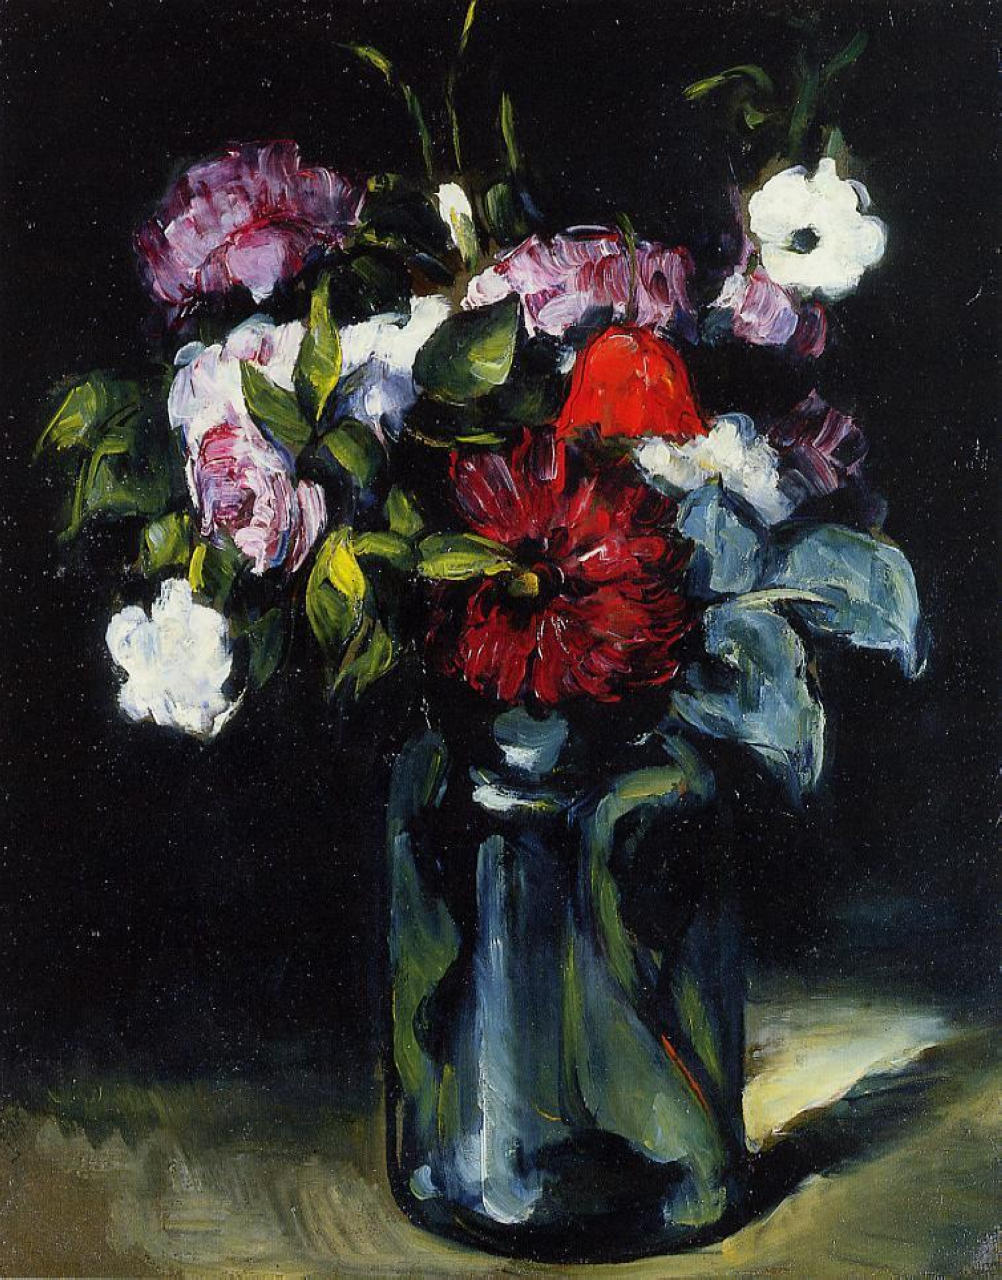 flower vase painting on canvas with Flowers In A Vase 1873 on Blazing White Daisies In Persimmon Vase Elaine Plesser moreover Pic3819 004 together with Art Sg   images Famous 20Paintings famous 20Landscape 20flower 20VAN 20GOGH 201 moreover File  C3 89douard Ma    Roses  Tulips et Lilas dans un vase de christal besides Watch.